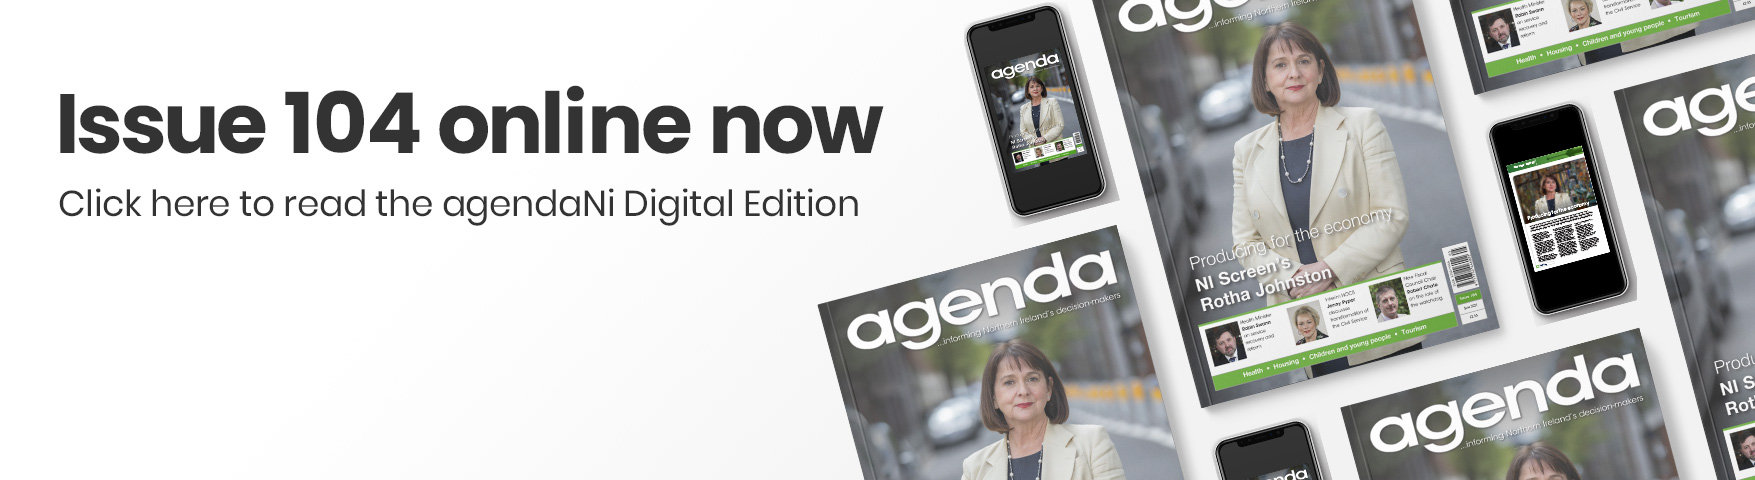 Issue 104 online now. Click here to read the agendaNi Digital Edition.